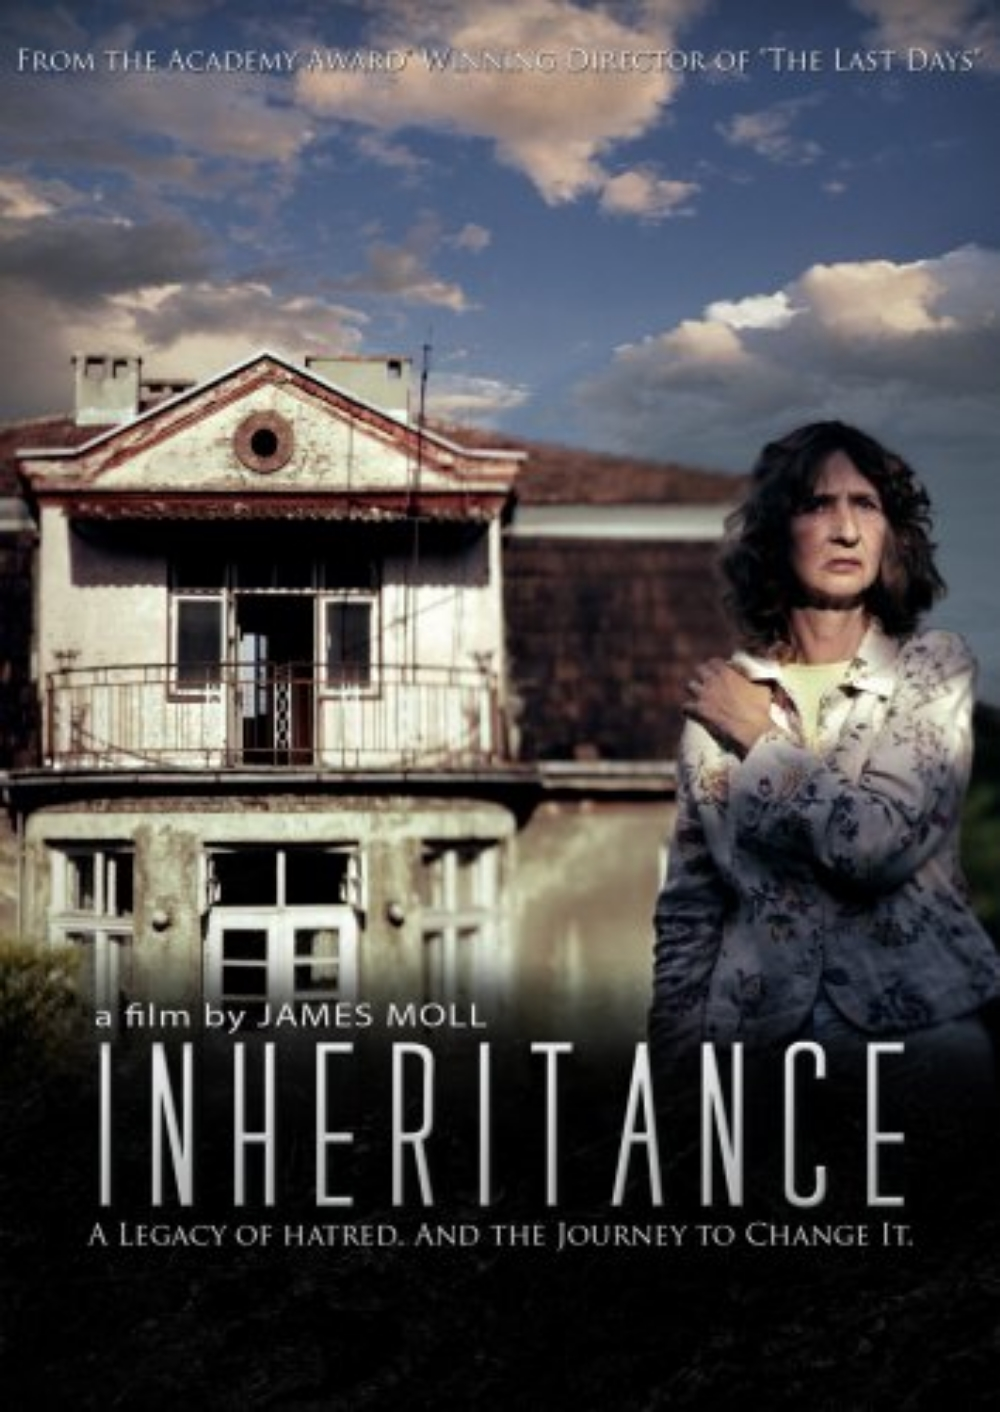 """INHERITANCE   The EMMY® AWARD Winning Documentary, INHERITANCE is the story of Monika Hertwig and her journey to accept the truth about her father, Nazi commander, Amon Goeth, who was portrayed by actor Ralph Fiennes in """"Schindler's List."""" As part of Monika's search for information, she reaches out to Helen Jonas-Rosenzweig, a woman who had been enslaved by Monika's father during the war. More than sixty-years after Monika's father was executed for his war crimes, in a historic and painful moment, these two women meet, bringing closure, yet raising new questions."""